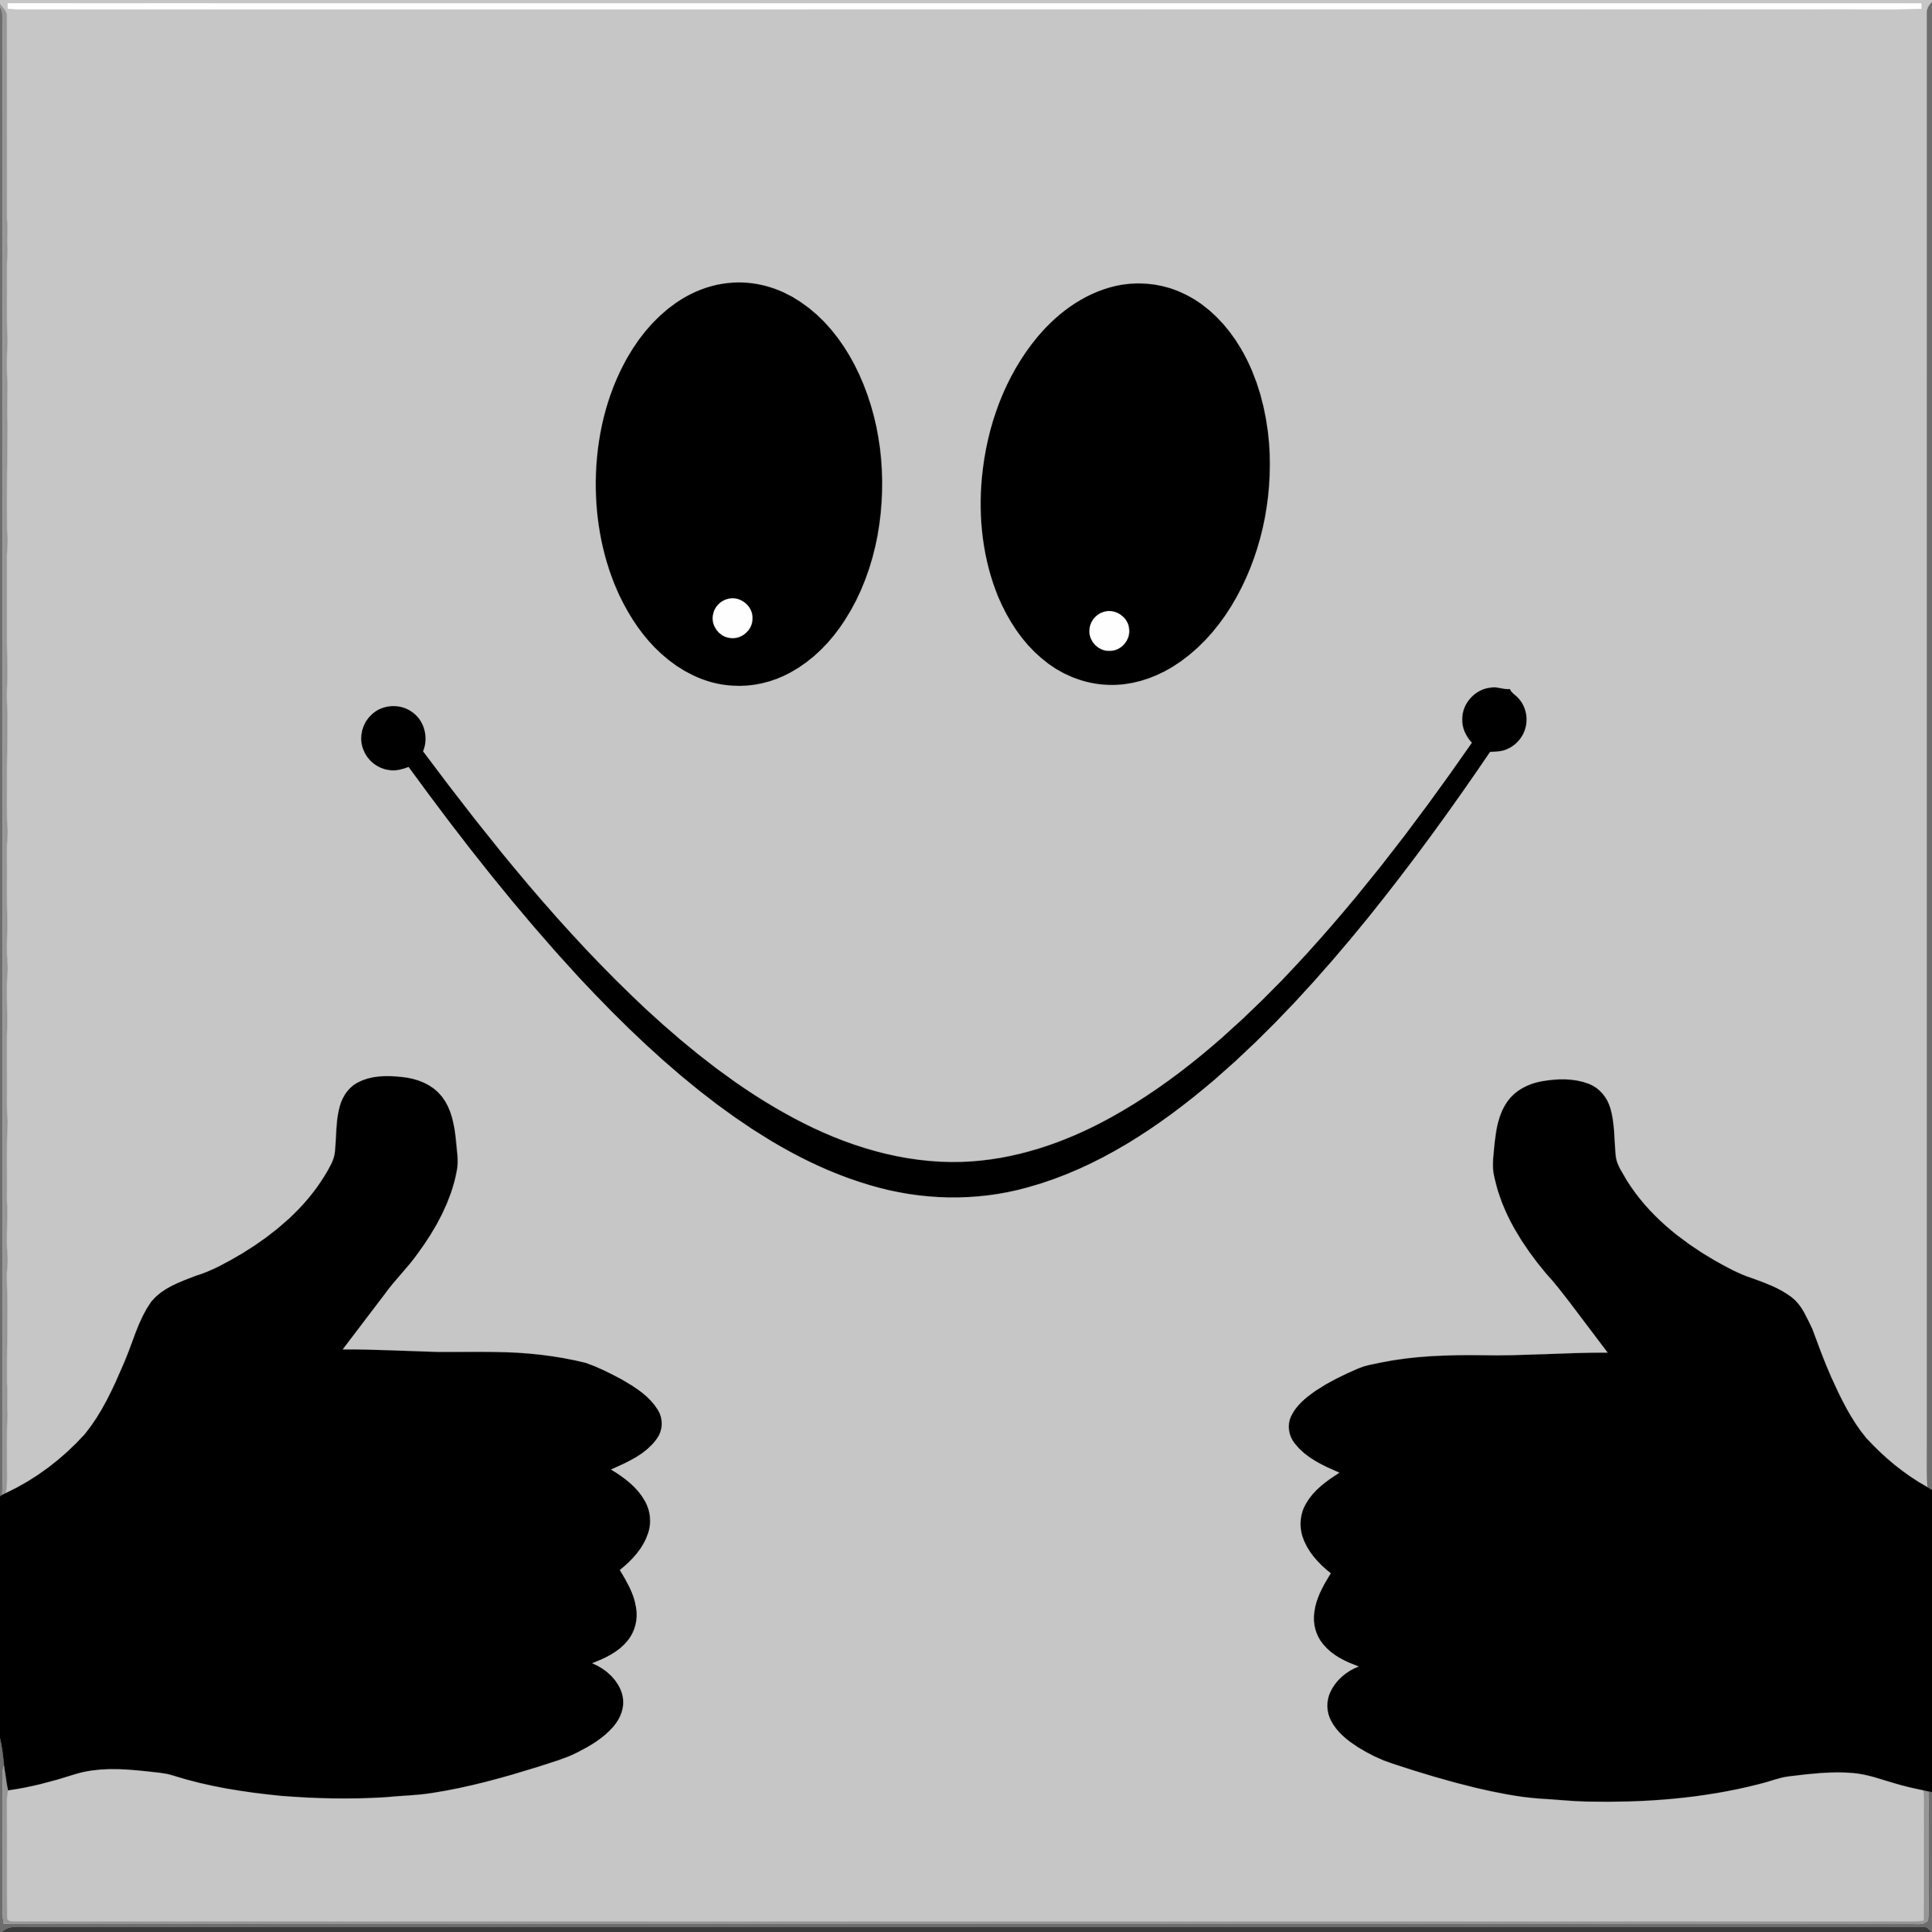 Thumbs Up Smiley Face by GDJ